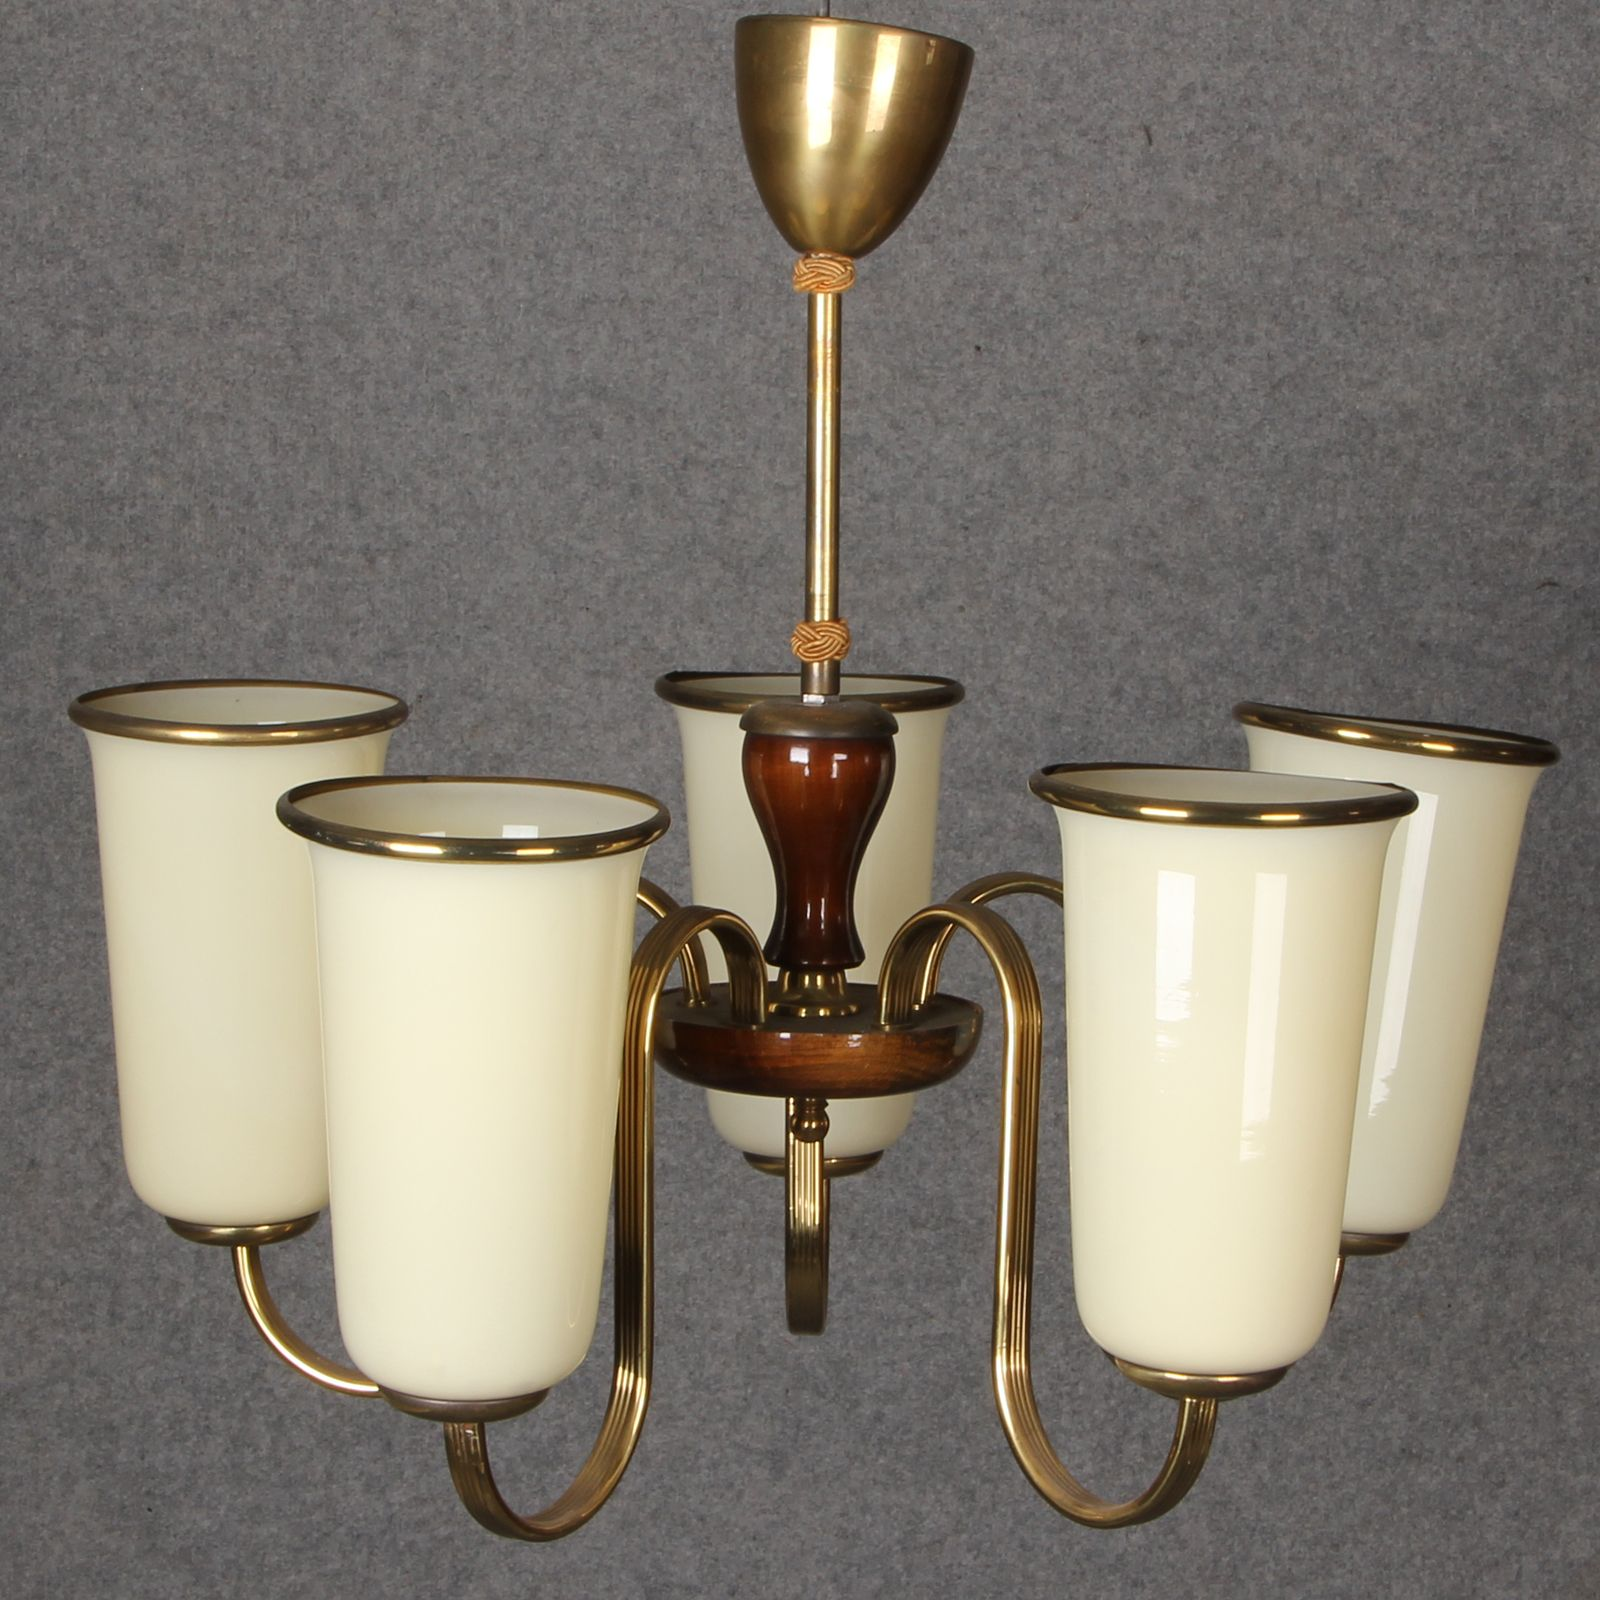 art deco lampe mit 5 tulpen lampenschirm ebay. Black Bedroom Furniture Sets. Home Design Ideas